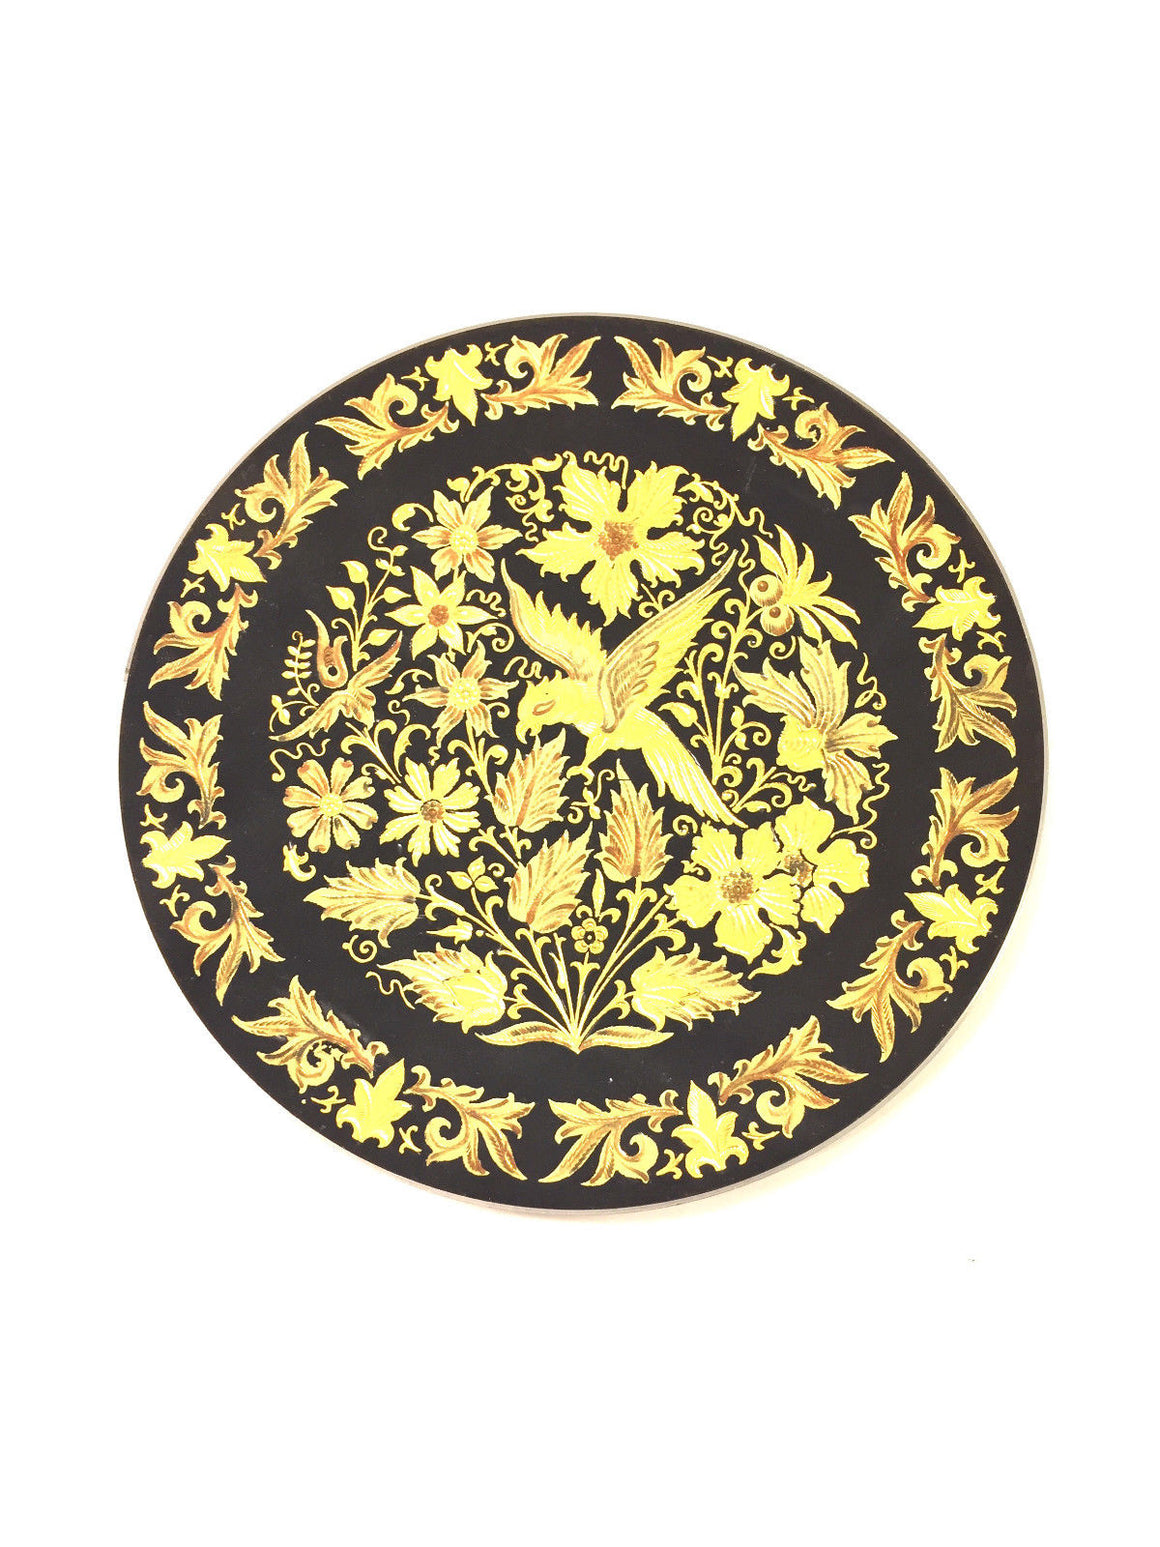 bisbiz.com DAMASCENE / TOLEDO SPAIN  Vintage 1970's  24 Karat Inlaid Gold Plate - Bis Luxury Resale